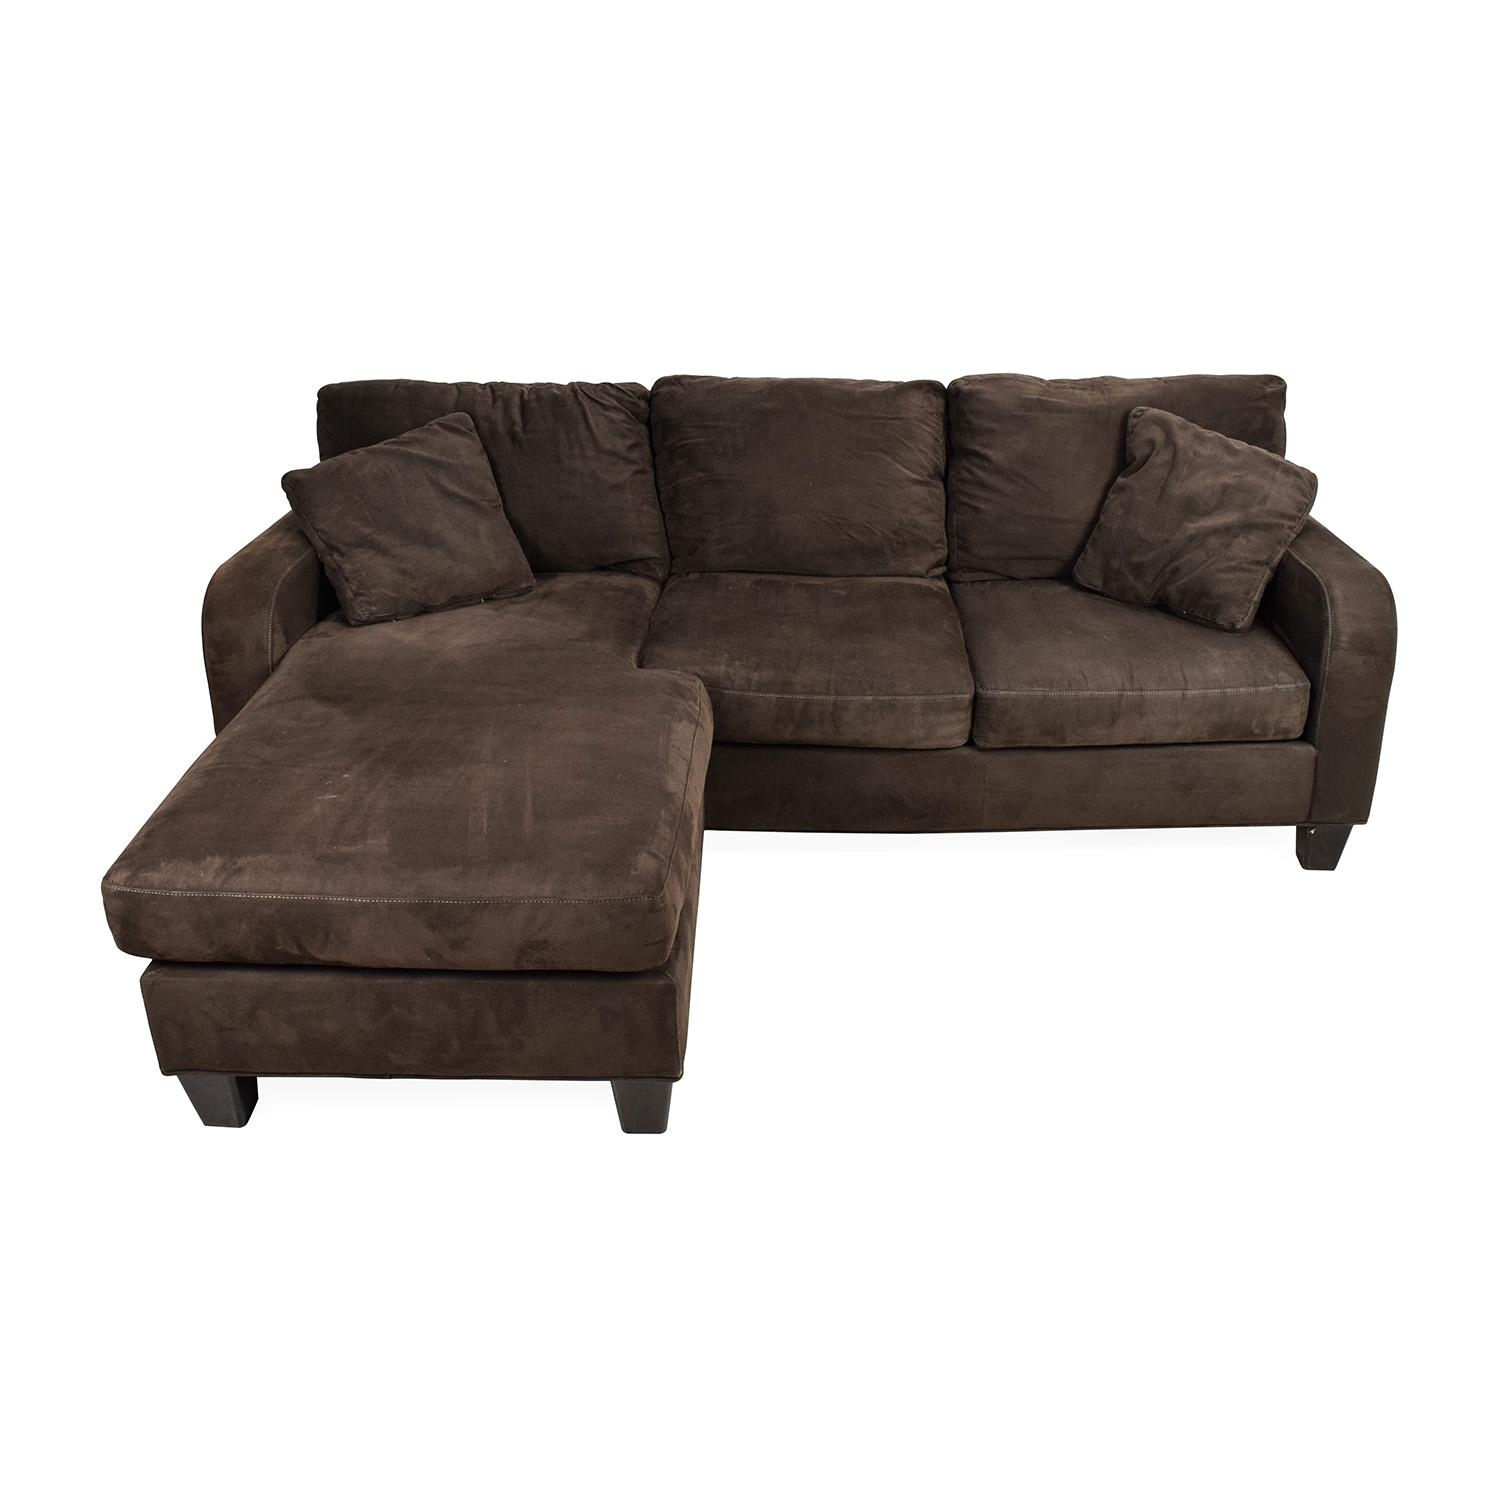 70% Off - Cindy Crawford Home Cindy Crawford Bailey Microfiber pertaining to Cindy Crawford Sofas